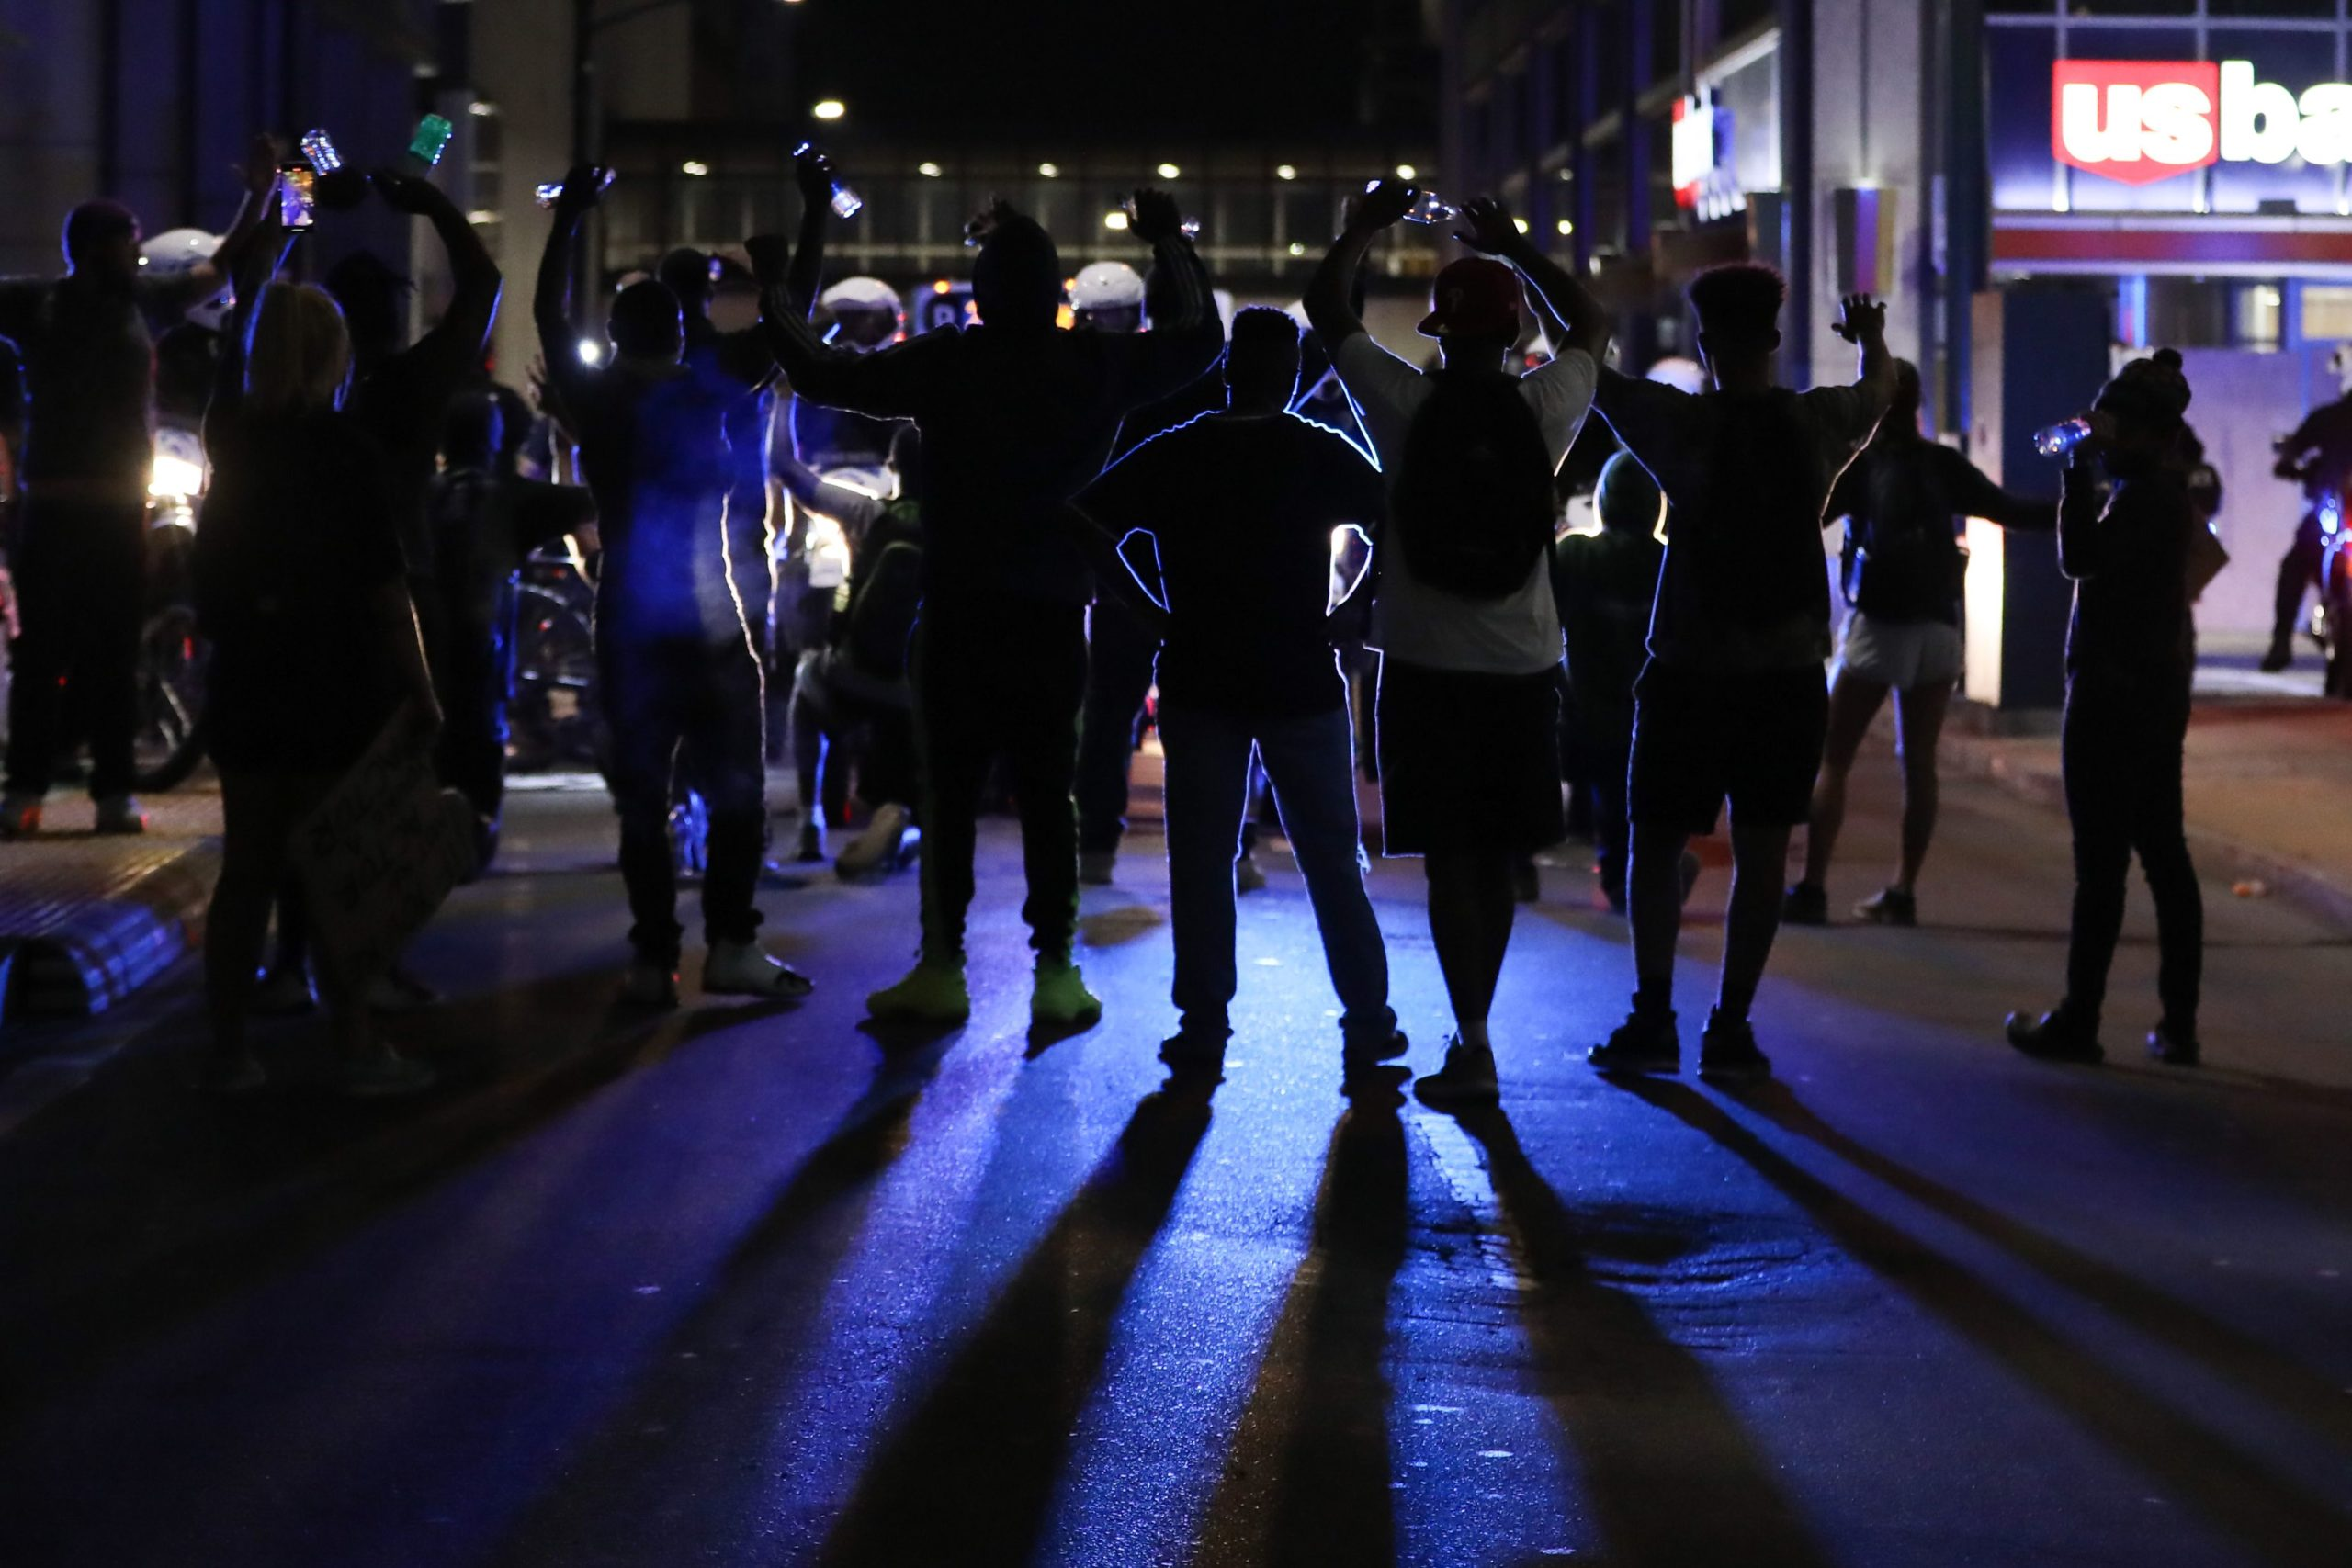 Protestors block the path of CMPD officers as they attempt to make an arrest near uptown Charlotte, North Carolina on June 2, 2020. (Photo by LOGAN CYRUS/AFP via Getty Images)